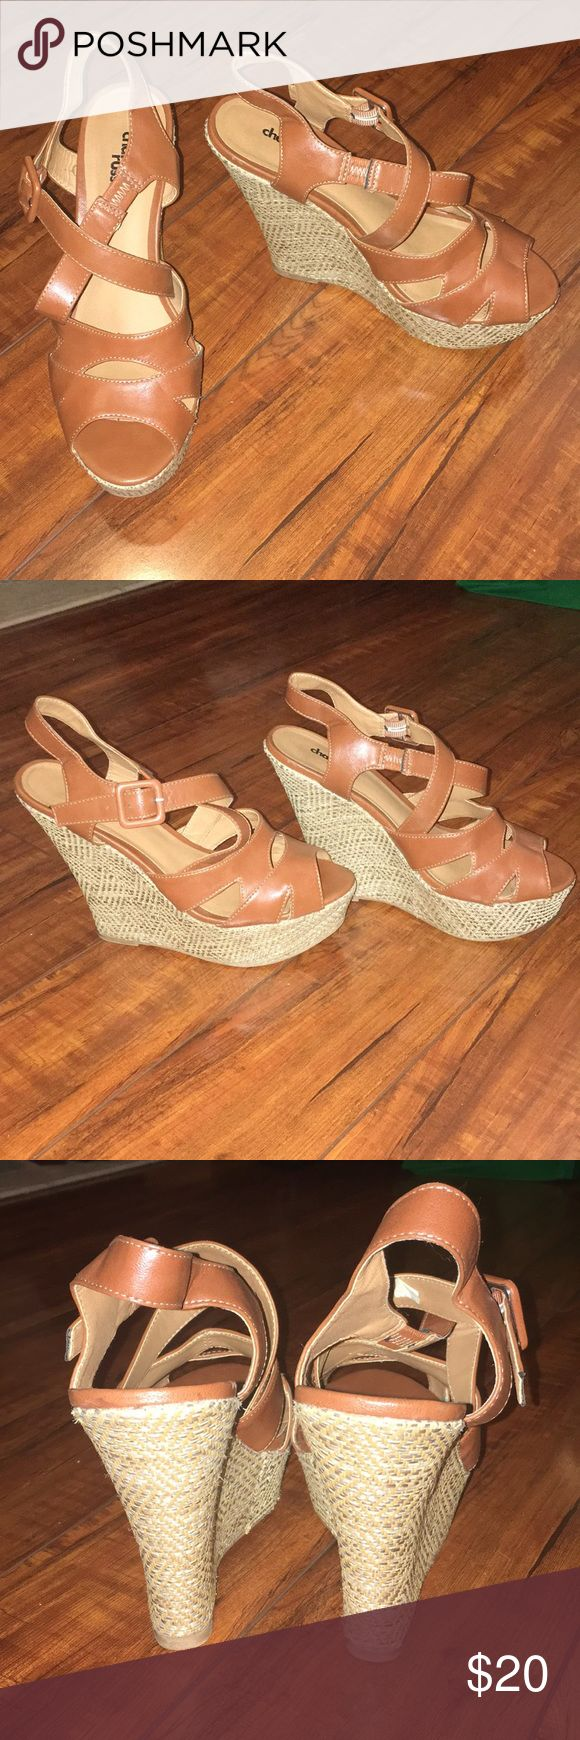 Brown Leather Wedges *LIKE NEW* Wicker pump/wedge. Brown leather straps. Worn once for 3 hours, never worn again. Disinfected! Very comfortable, just too big for me. Accidentally bought an 8 rather than a 7.5. Charlotte Russe Shoes Wedges